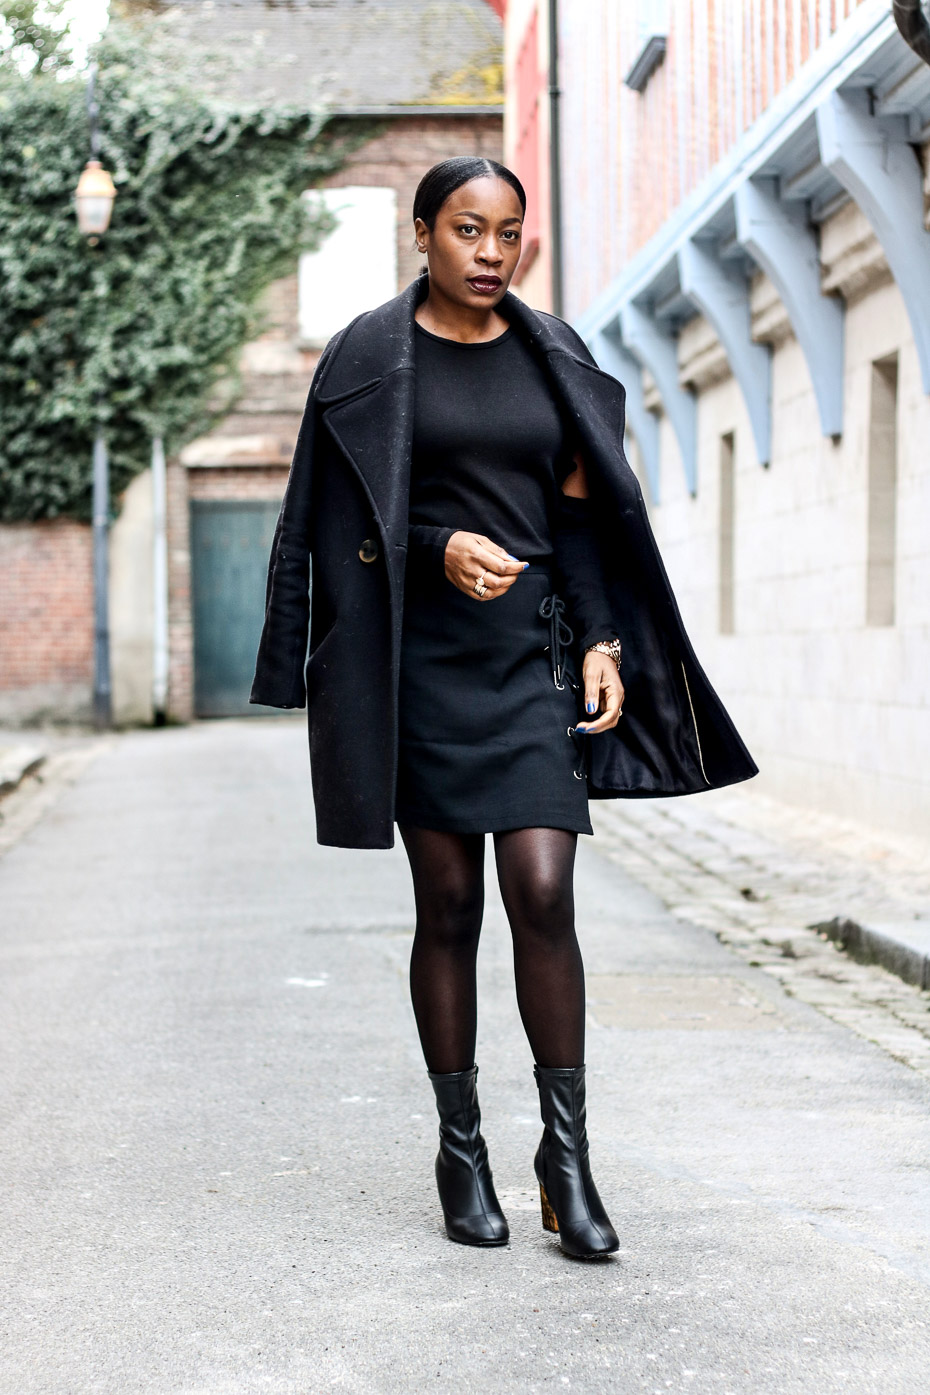 tenue-chic-en-total-look-noir